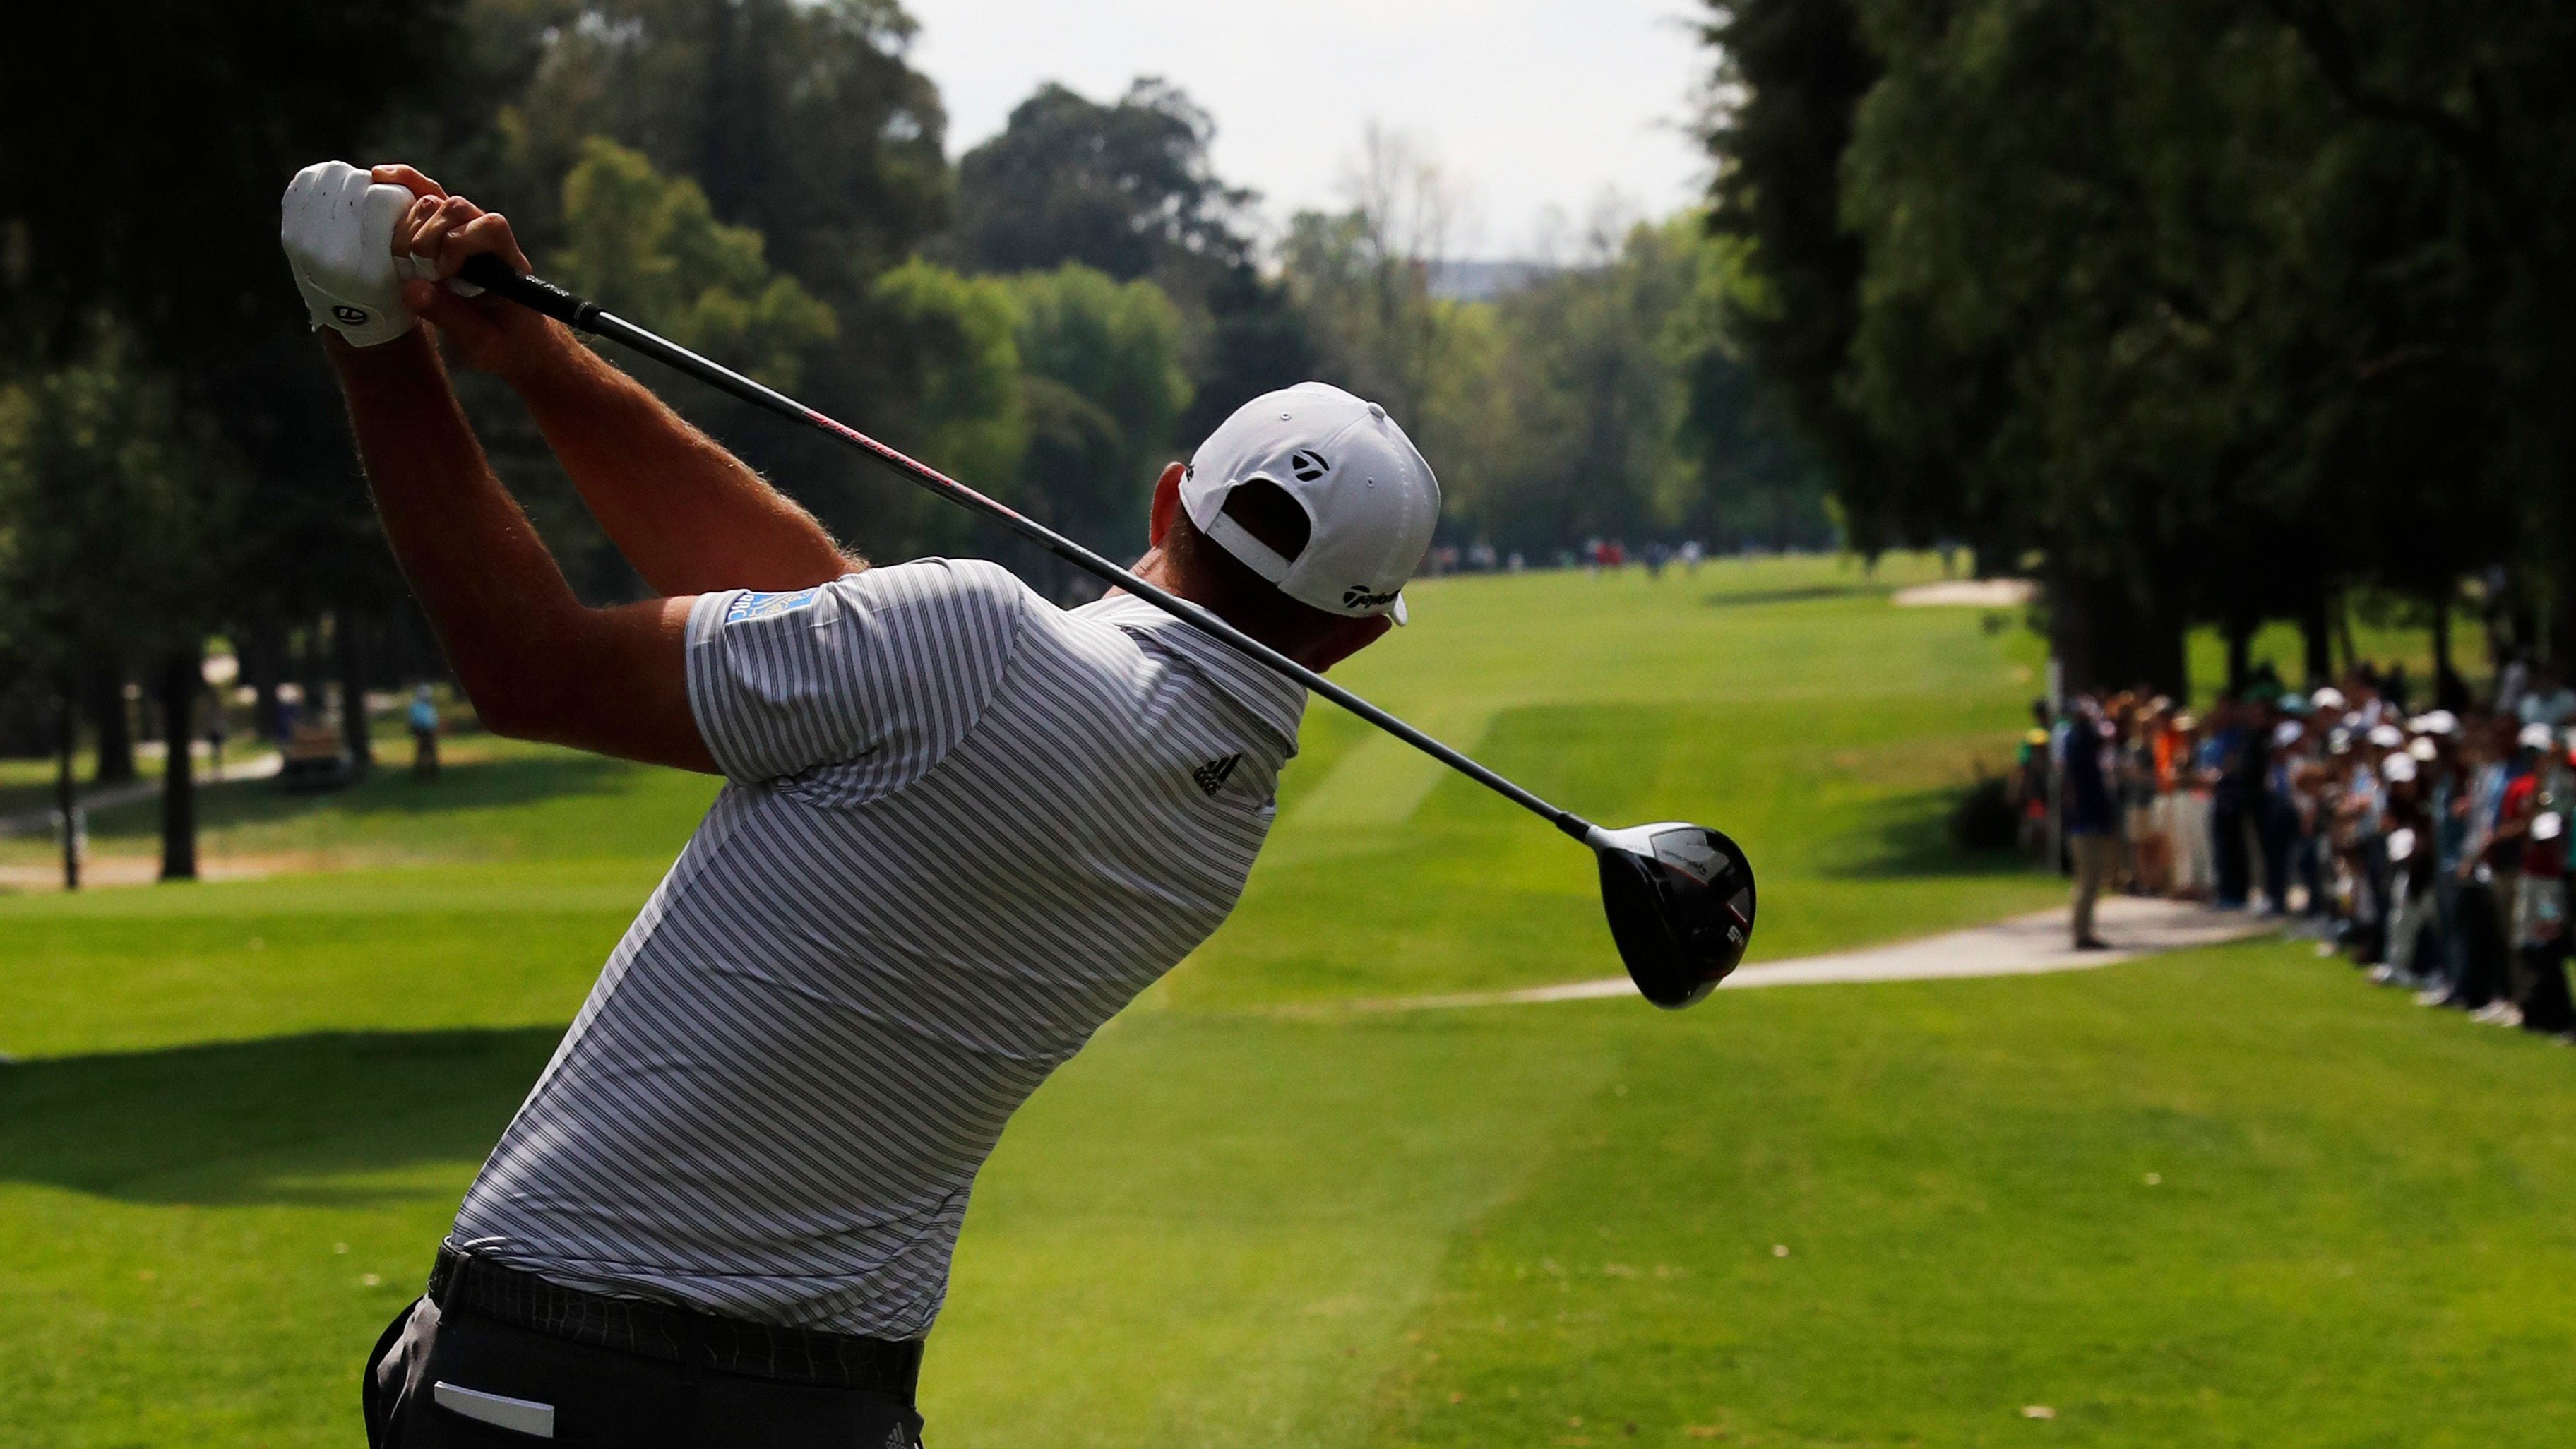 dustin johnson storms to top of 2019 masters odds with